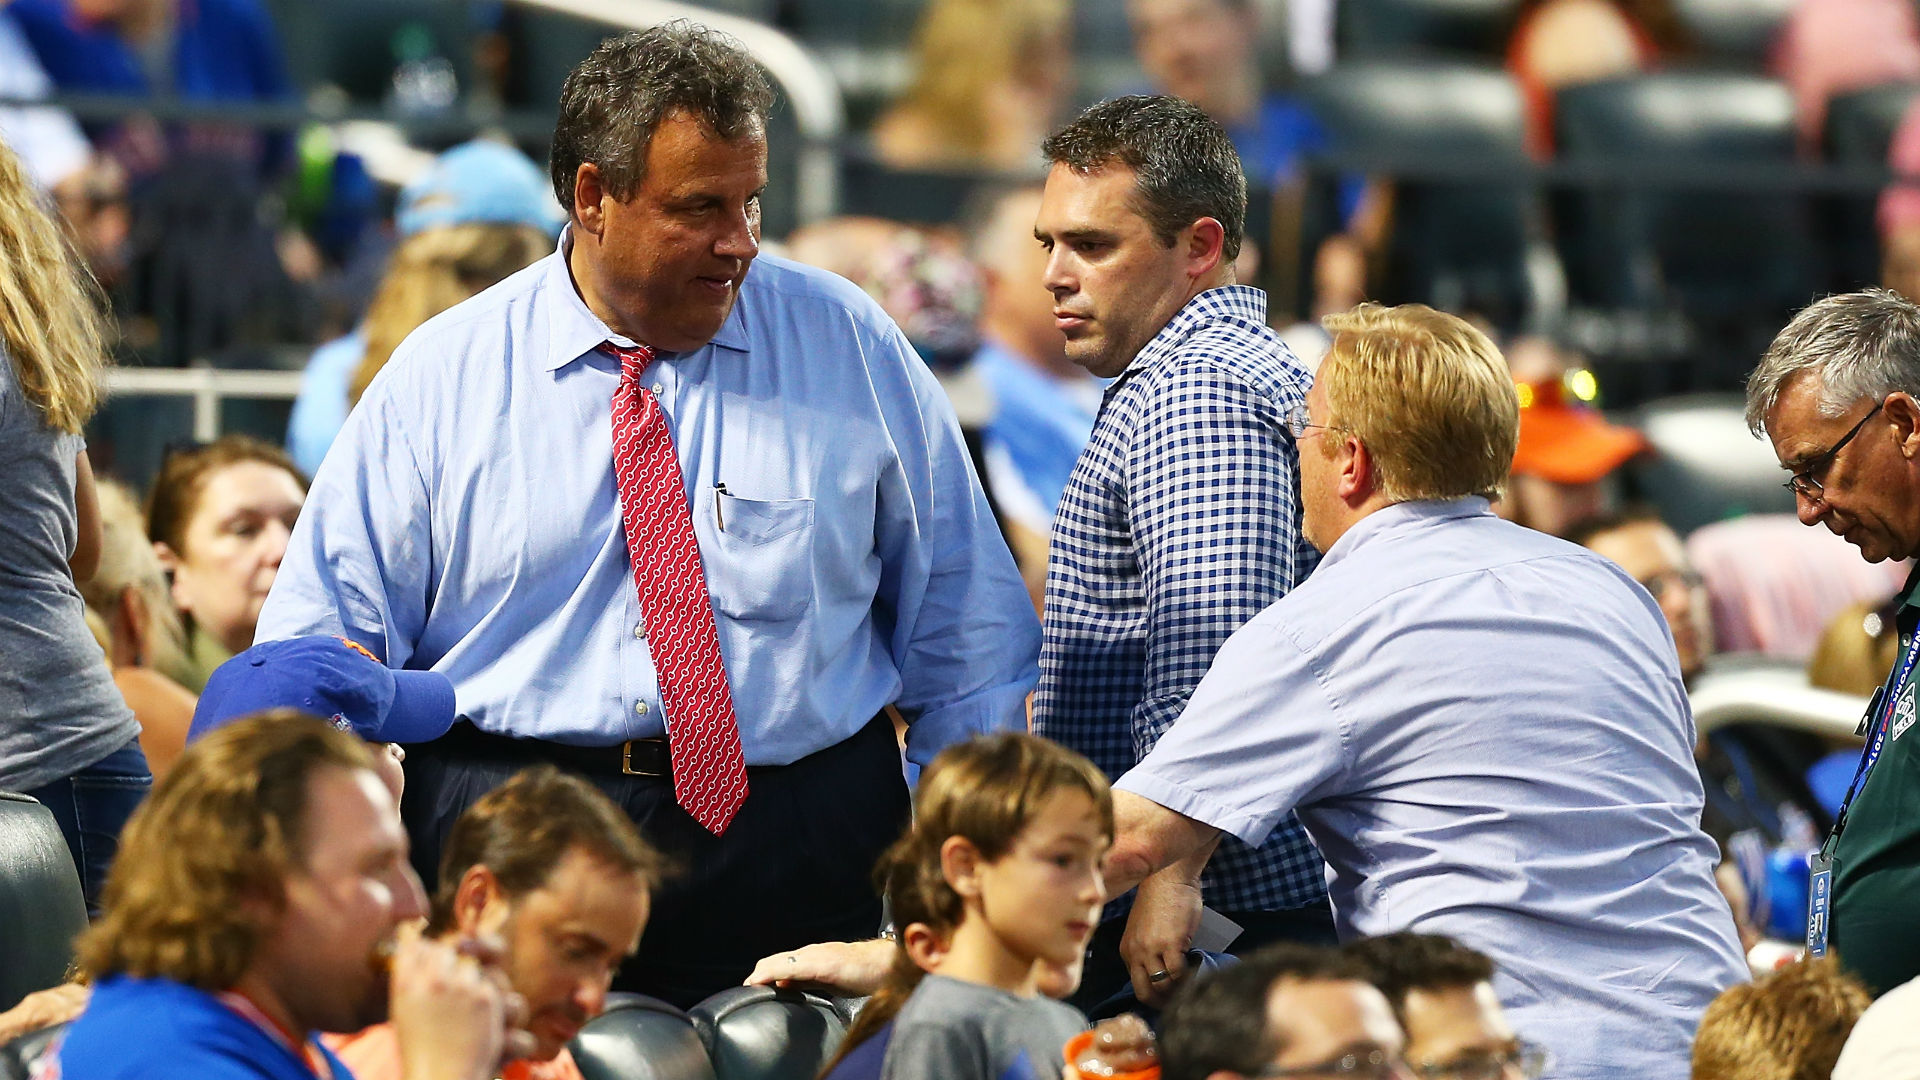 Chris Christie caught on video confronting heckling Cubs fan